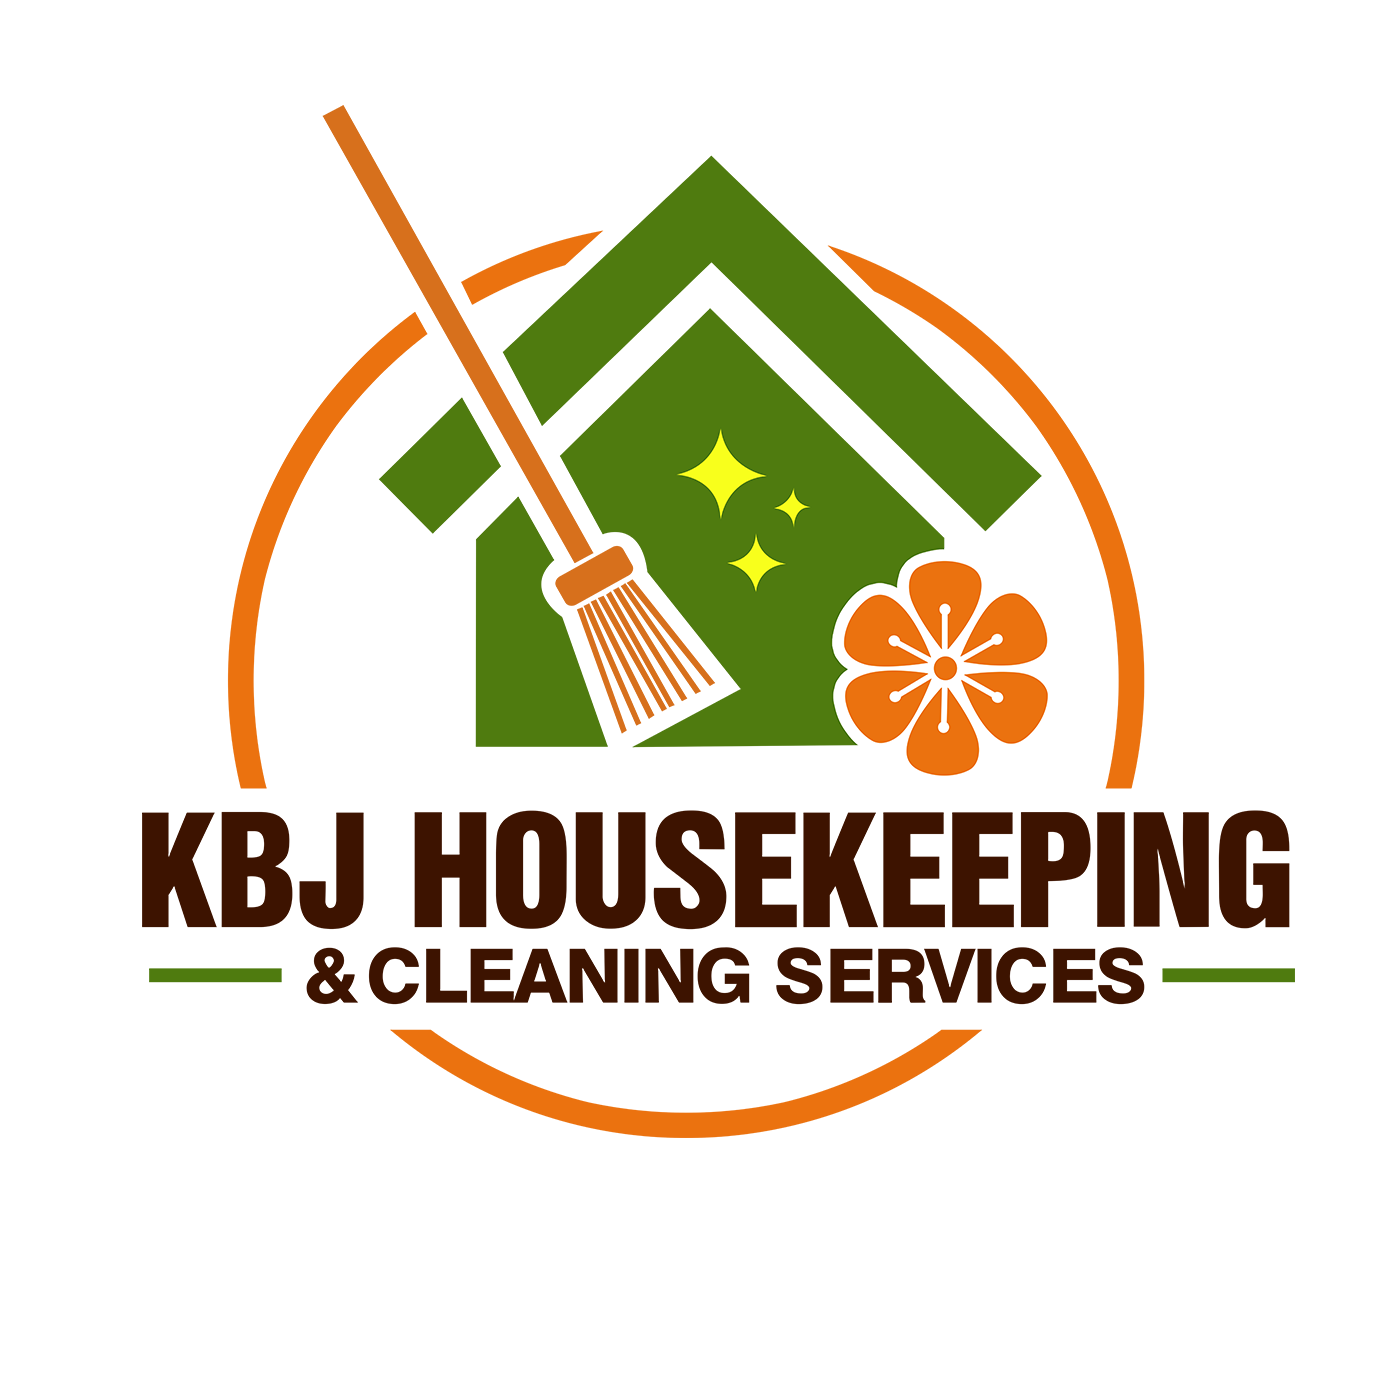 KBJ Housekeeping and Cleaning Services